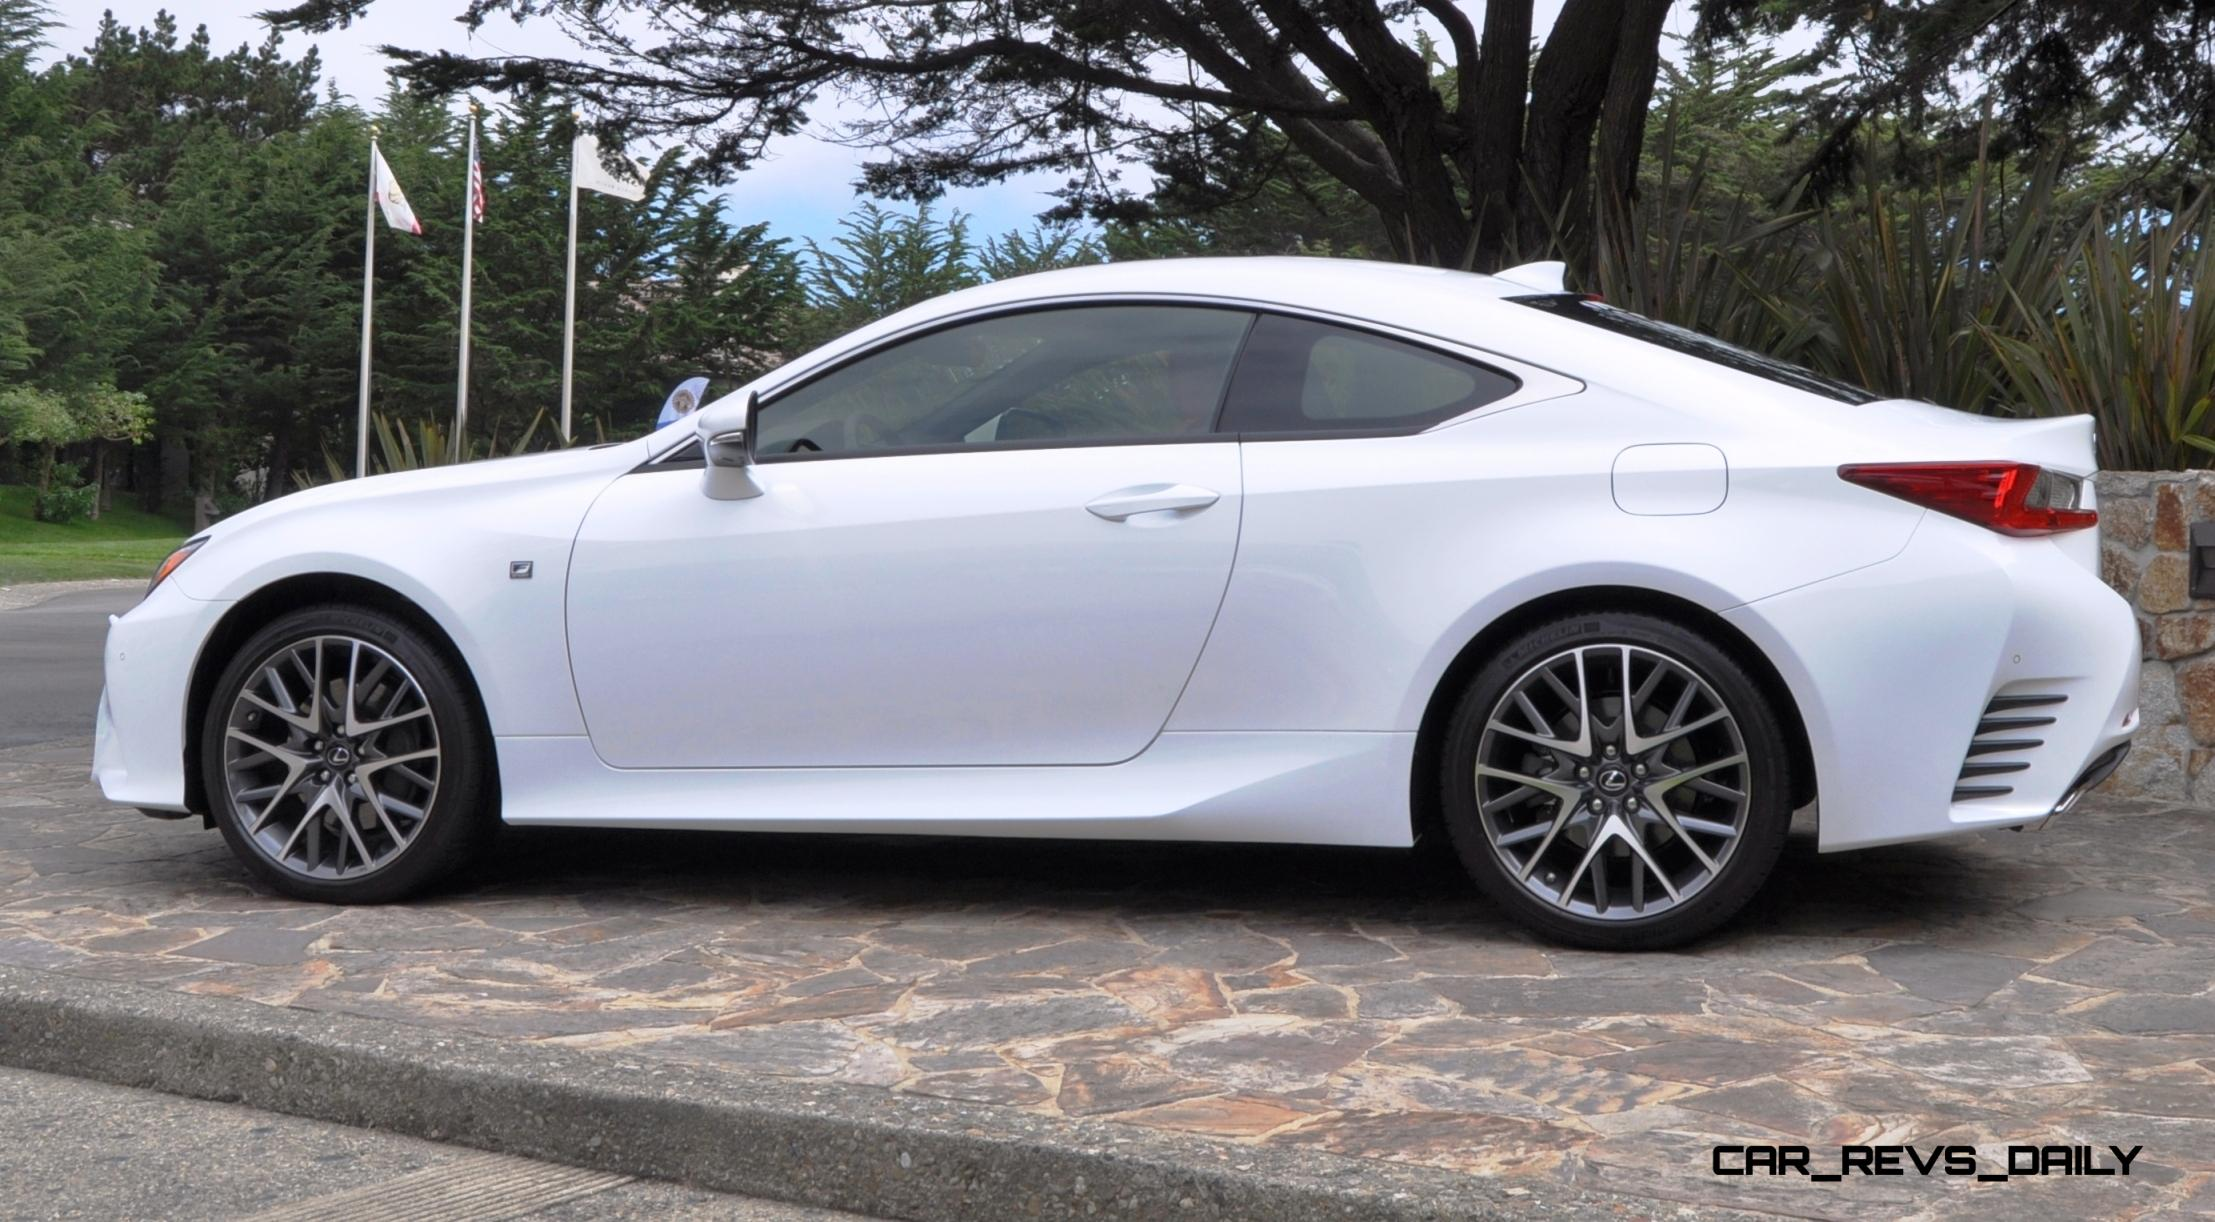 2015 Lexus RC350 F Sport EXCLUSIVE 8 Speed Auto, AWD, 4WS And Adaptive  Suspension! 18